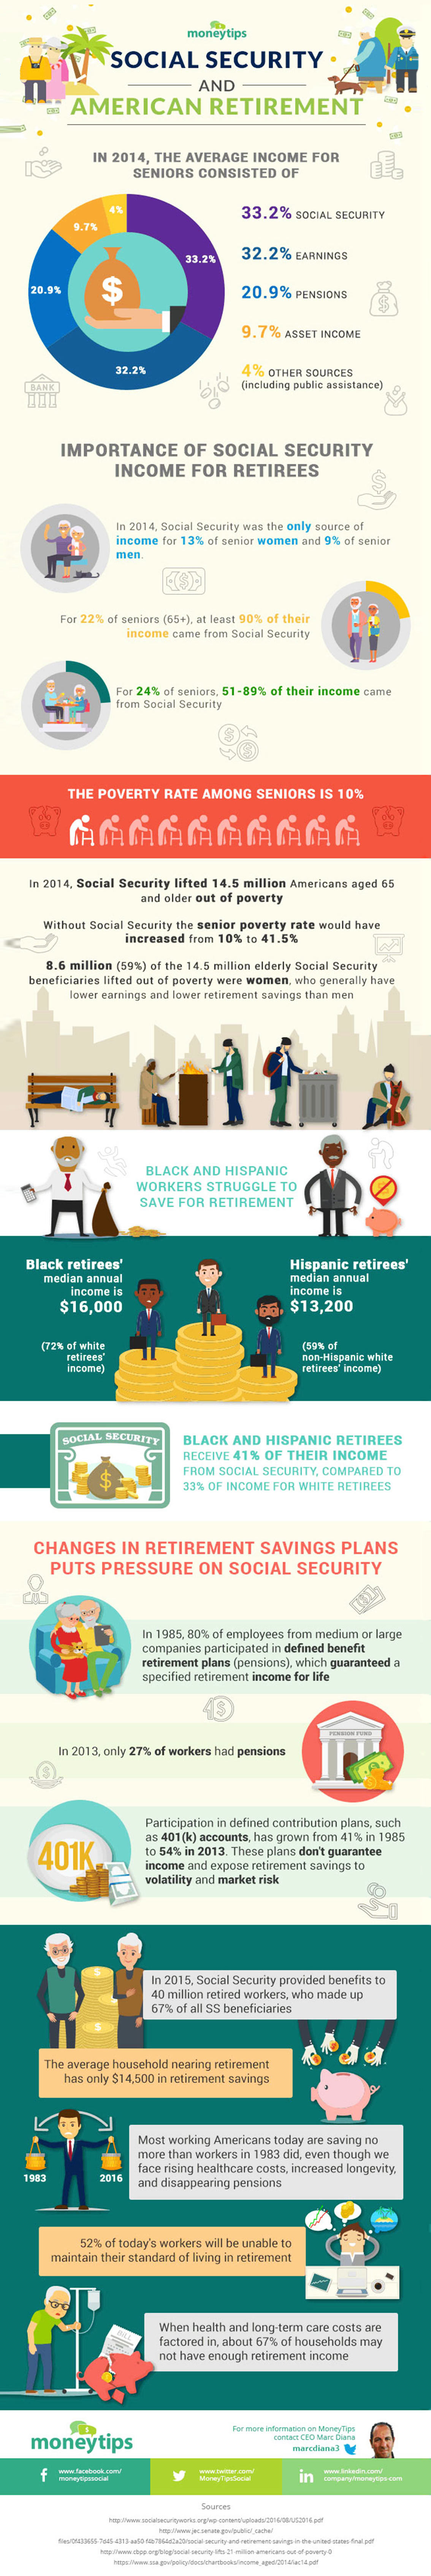 How Retired Americans Rely on Social Security Income - Retirement Infographic